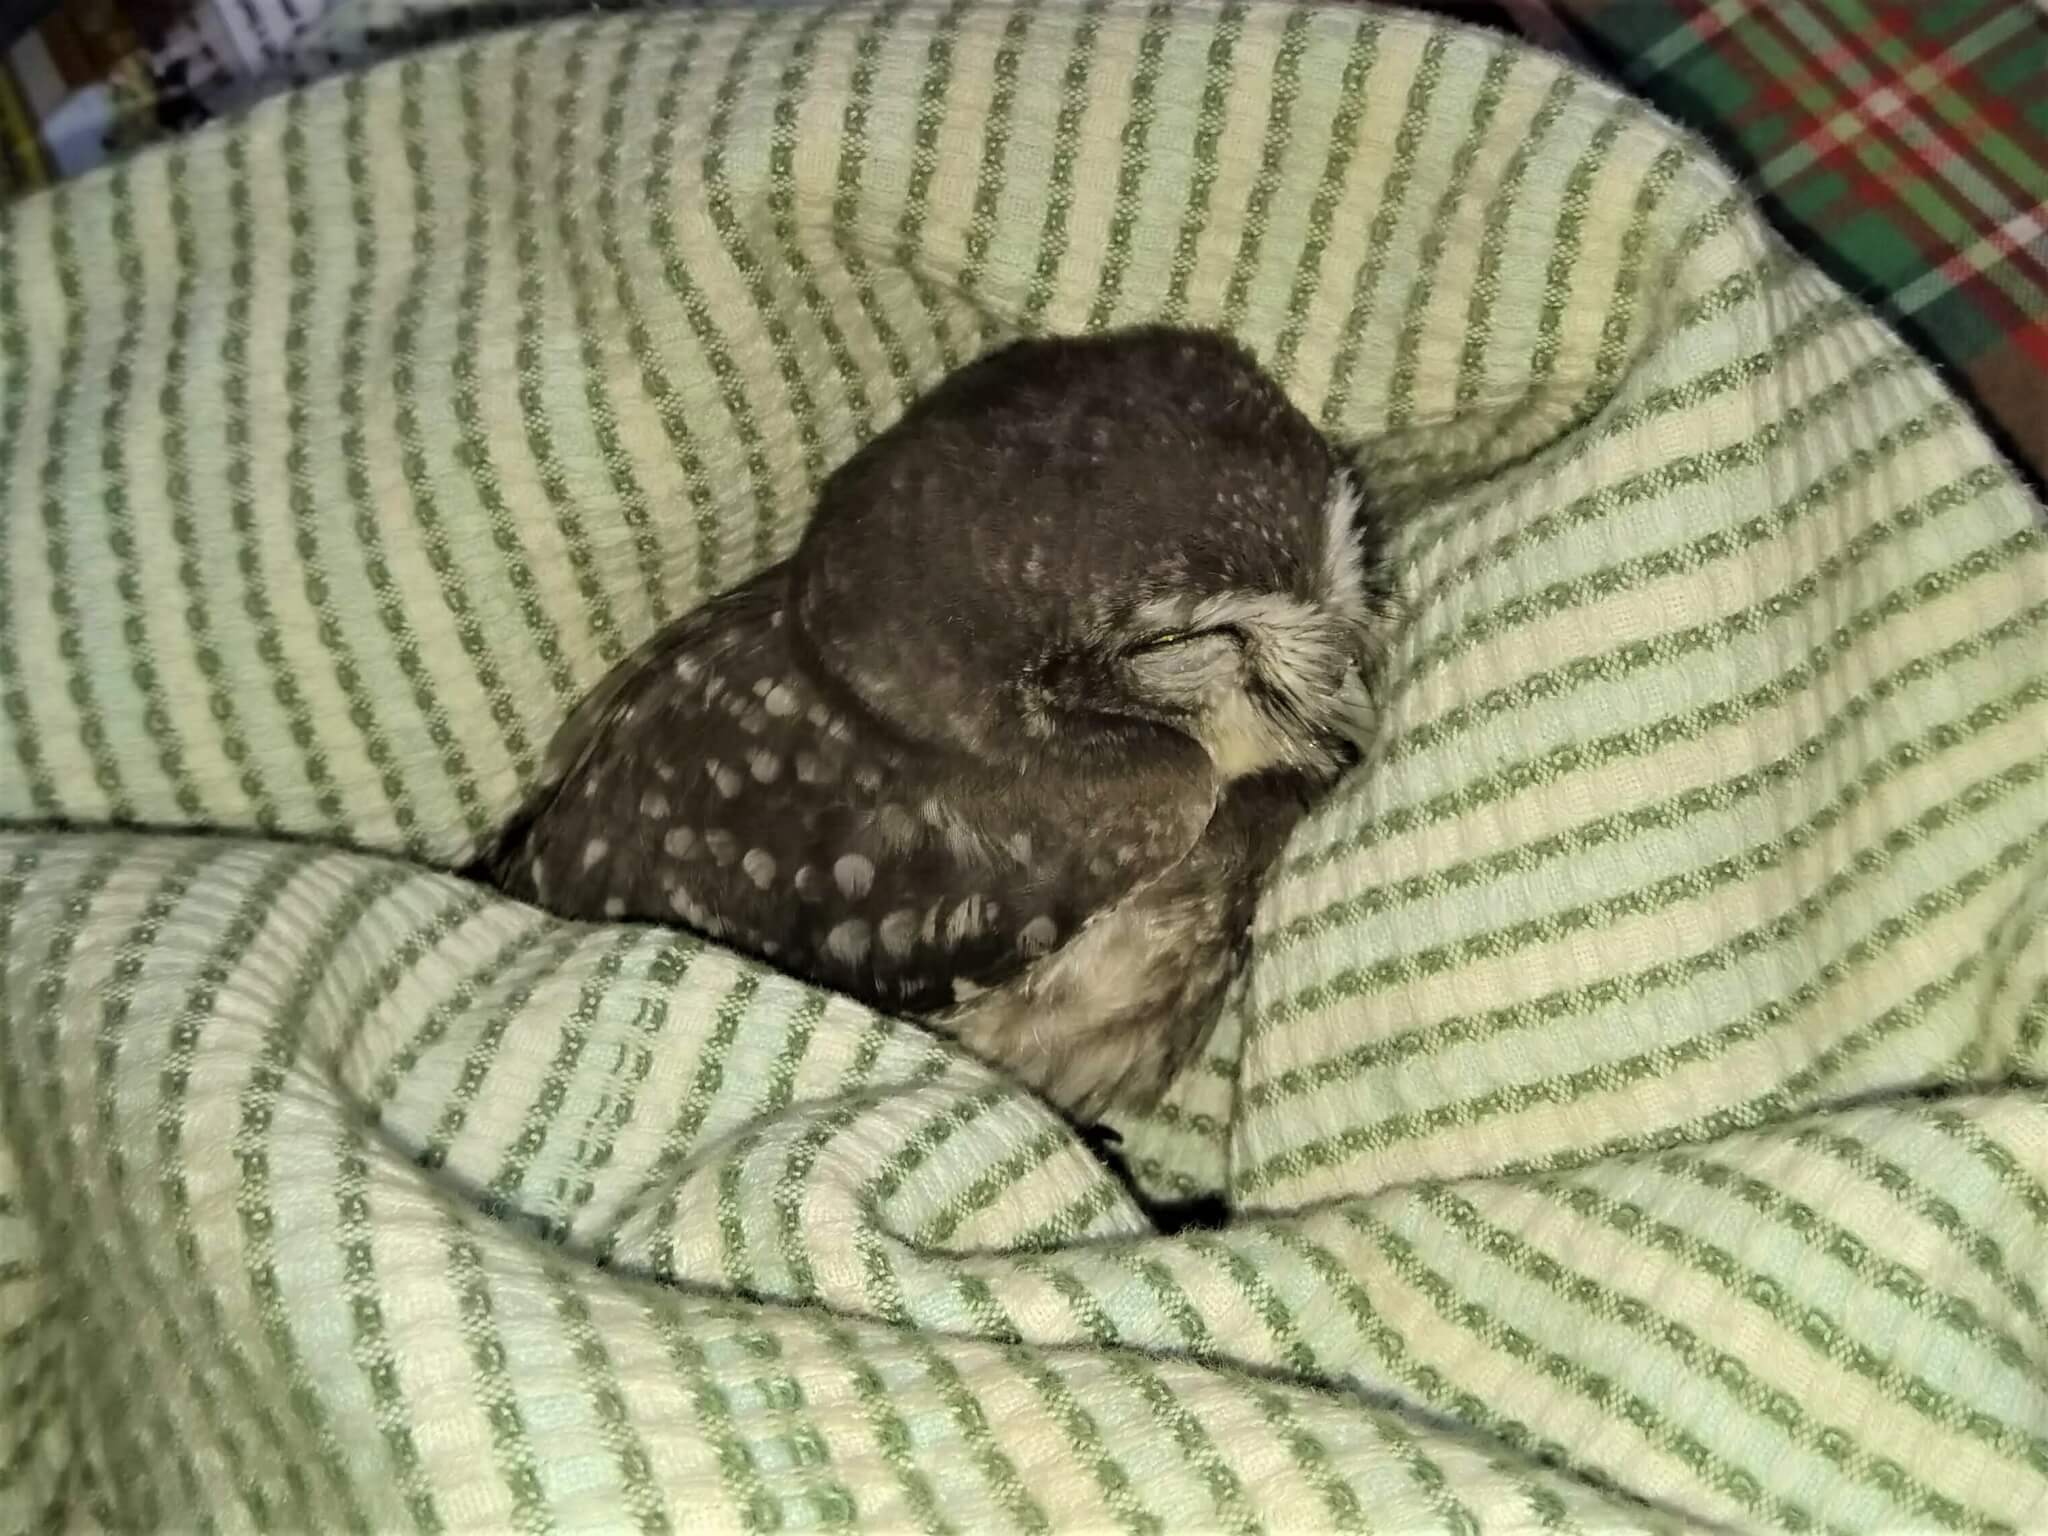 A spotted baby owlet sleeps snuggled into a striped blanket.